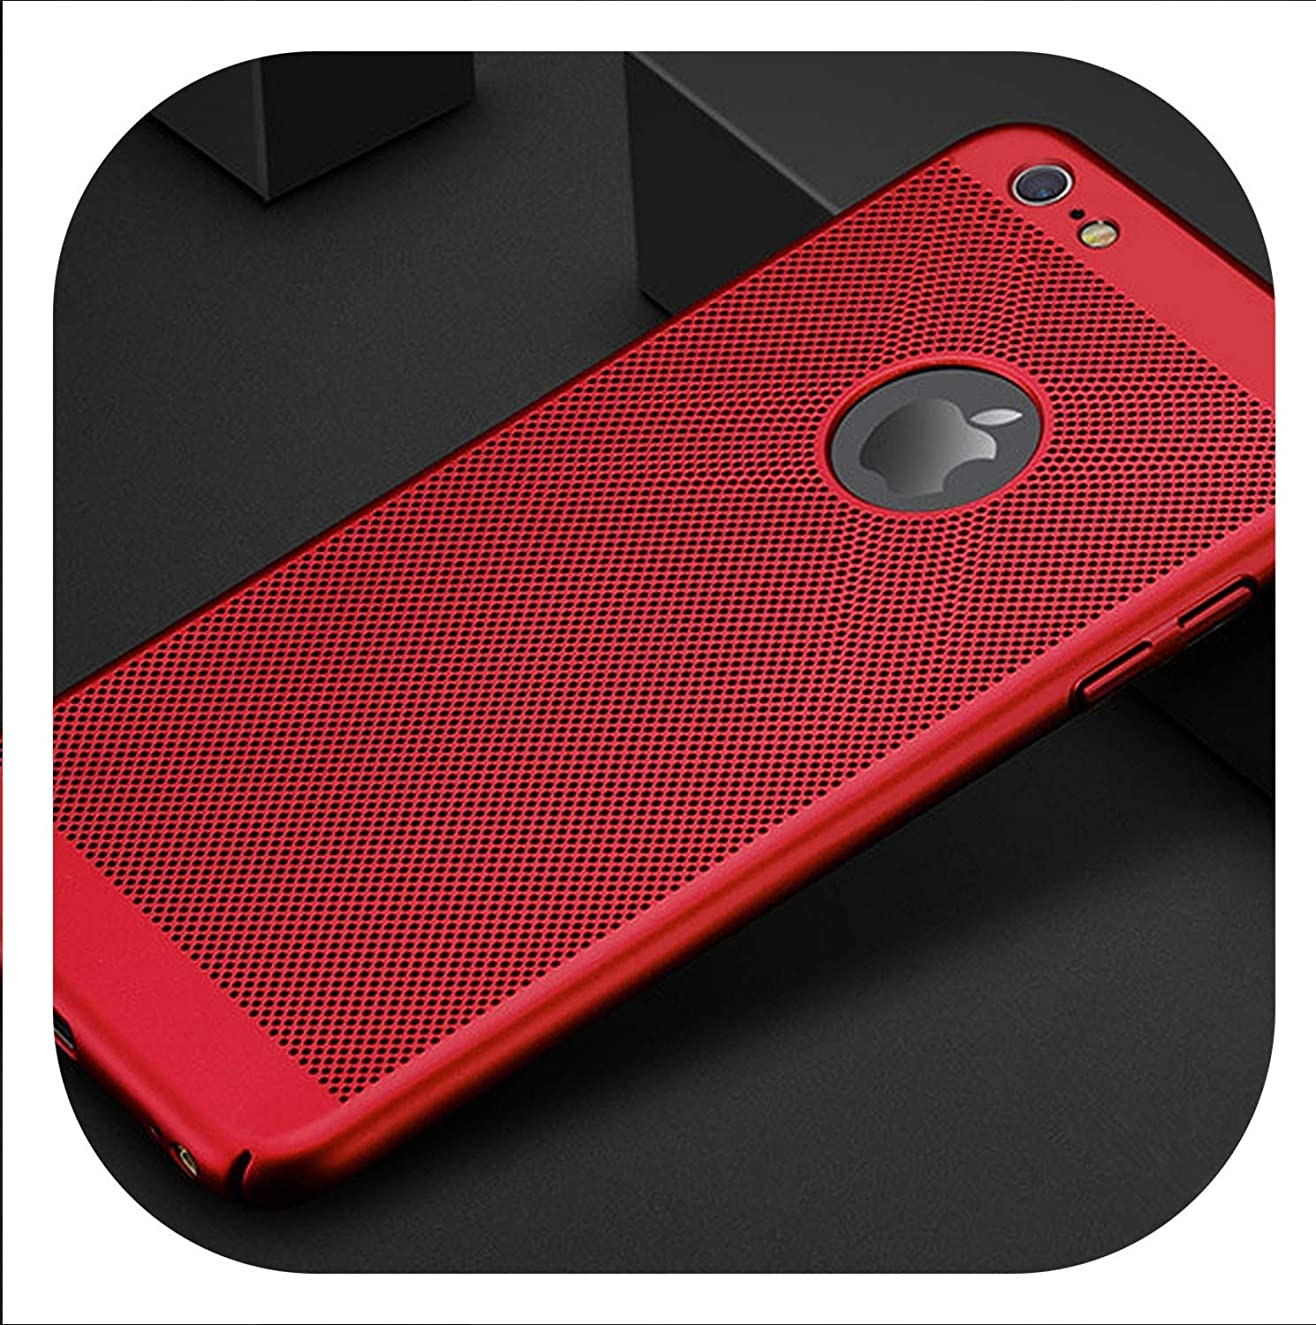 New face Hollow Heat Dissipation Hard PC for iPhone X 10 8 7 6 XS max XR 6S Plus 5S SE Phone Case Matte Protective Cover Coque,Red,for iPhone 7